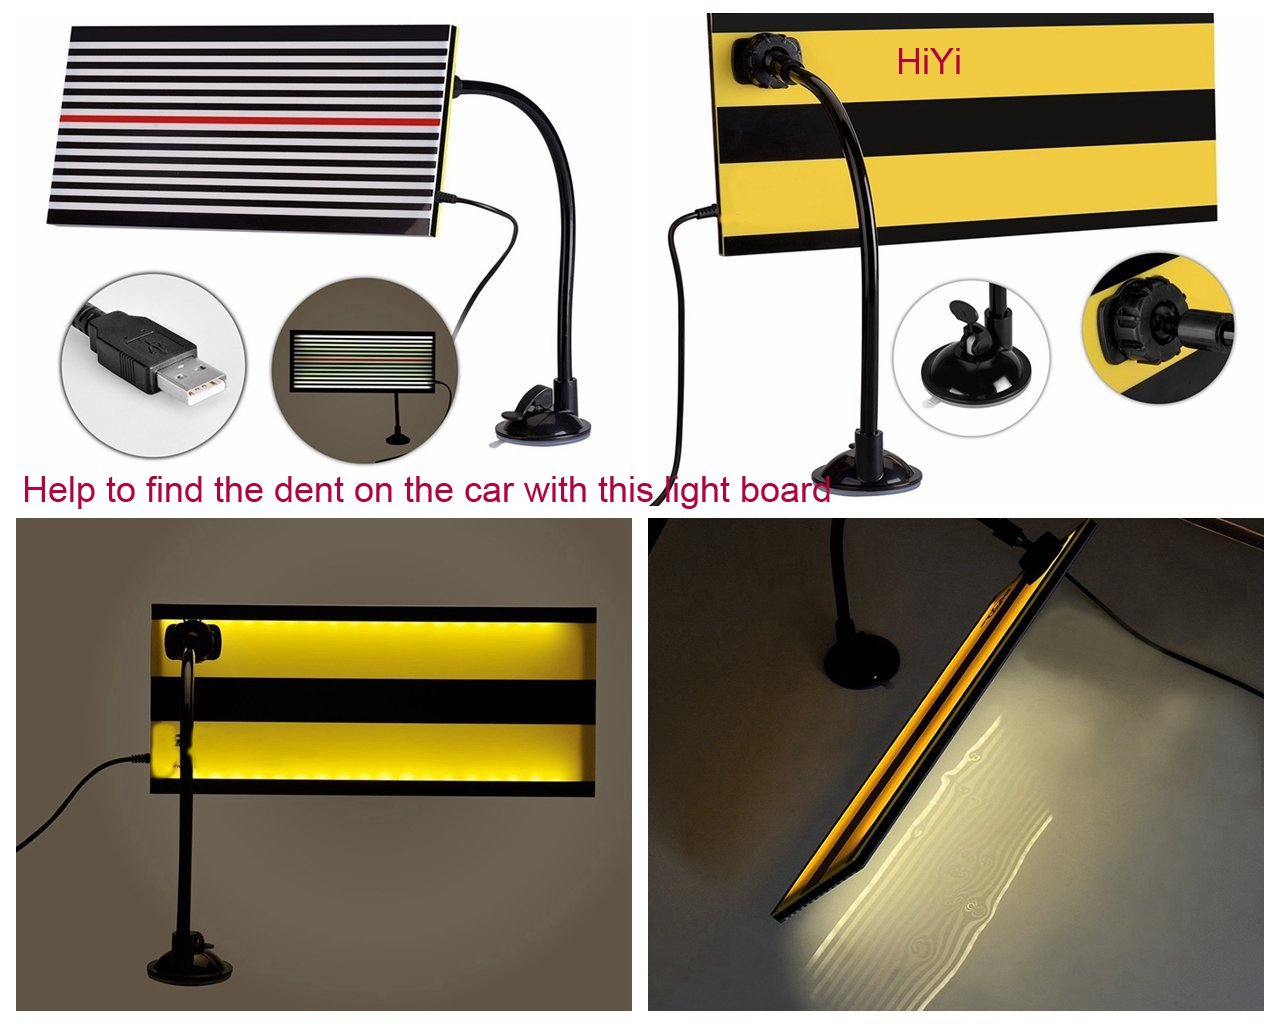 HiYi PDR Led Stripe Line Board Paintless Dent Removal Repair Tool with Ajustment Holder White light Haiyilu